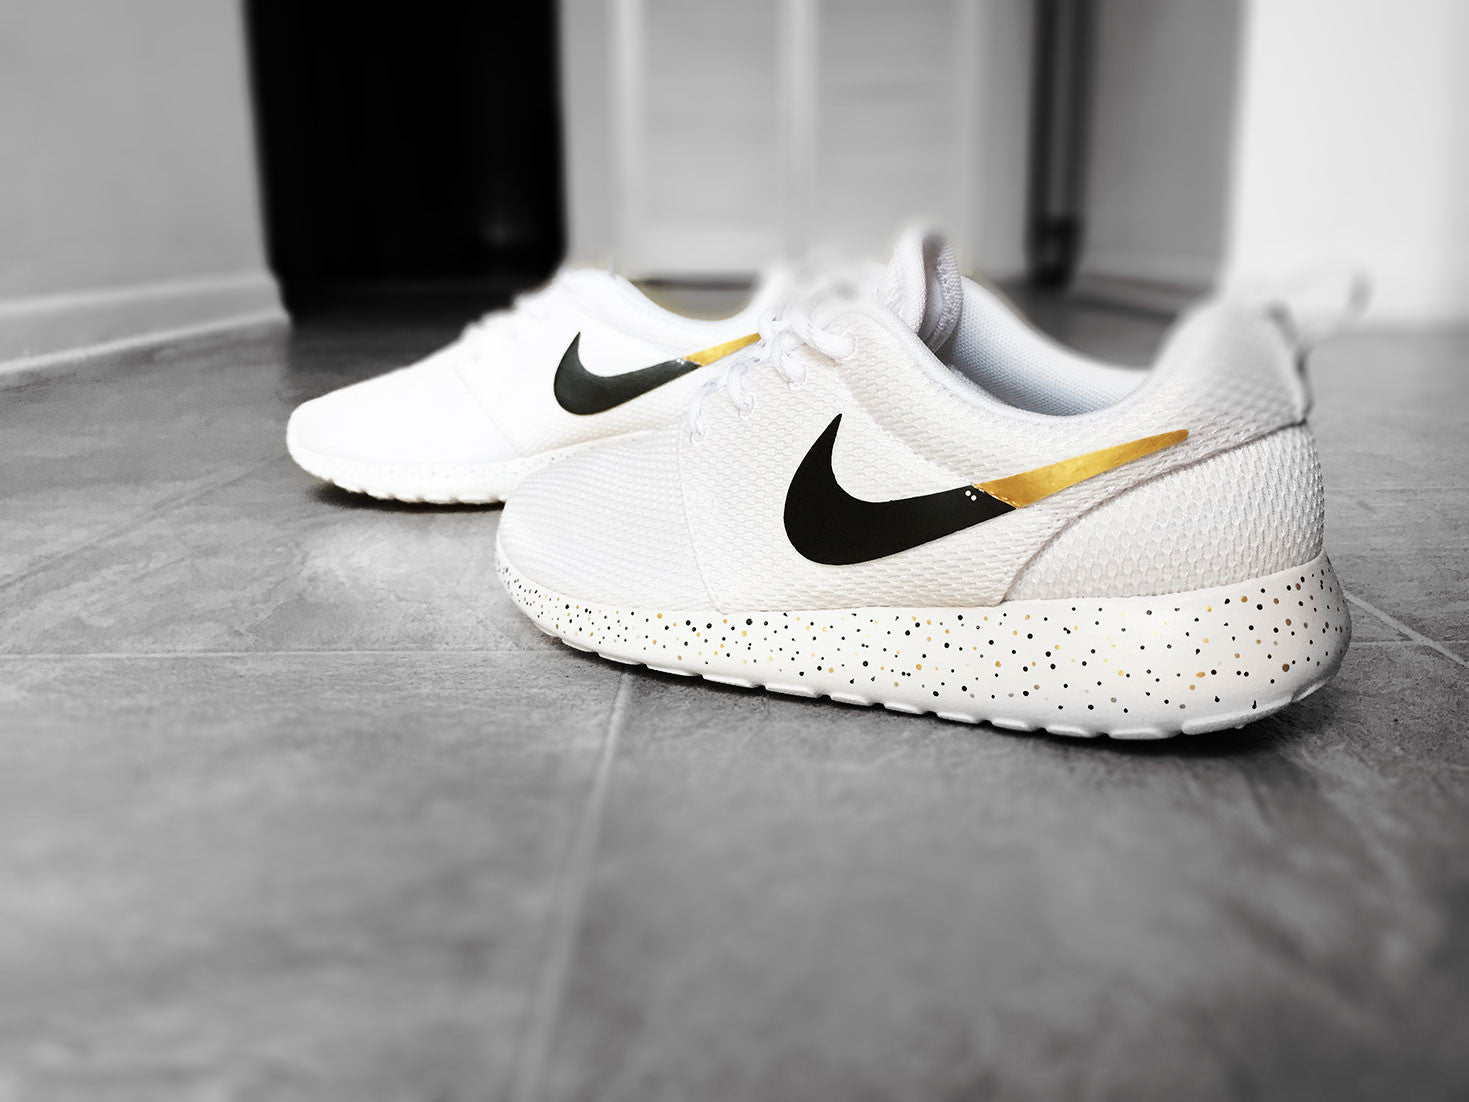 ... custom nike roshe run sneakers for women all white black and gold s .